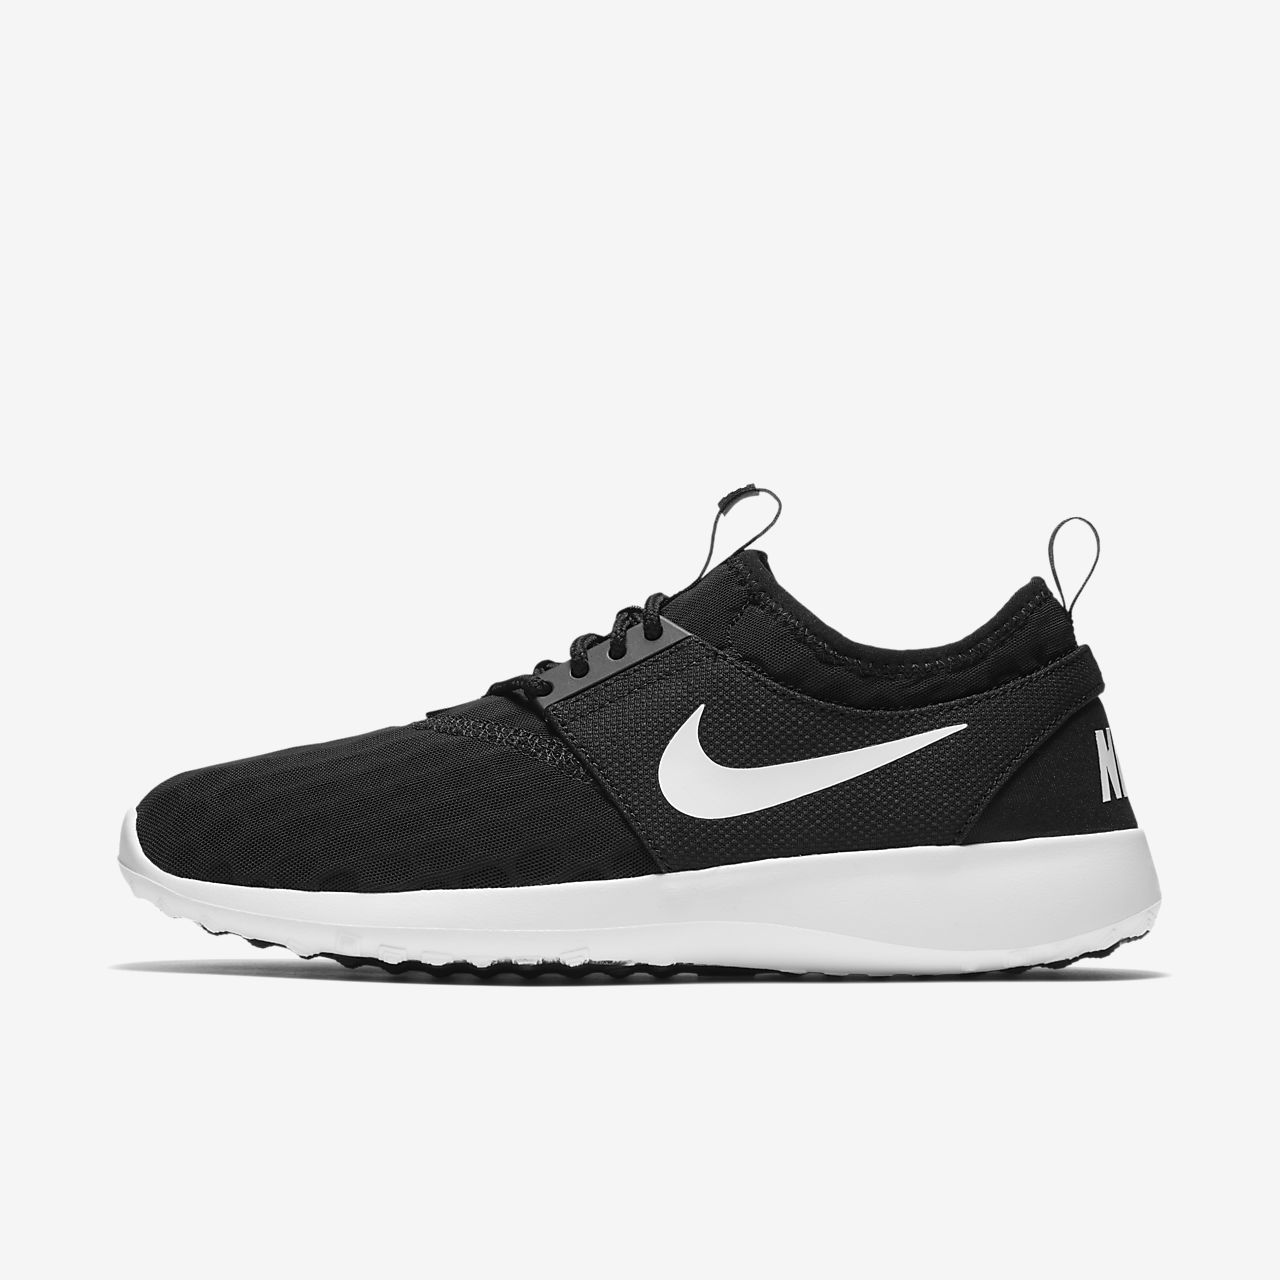 brand new 2f6c3 3b776 Low Resolution Nike Juvenate Women s Shoe Nike Juvenate Women s Shoe